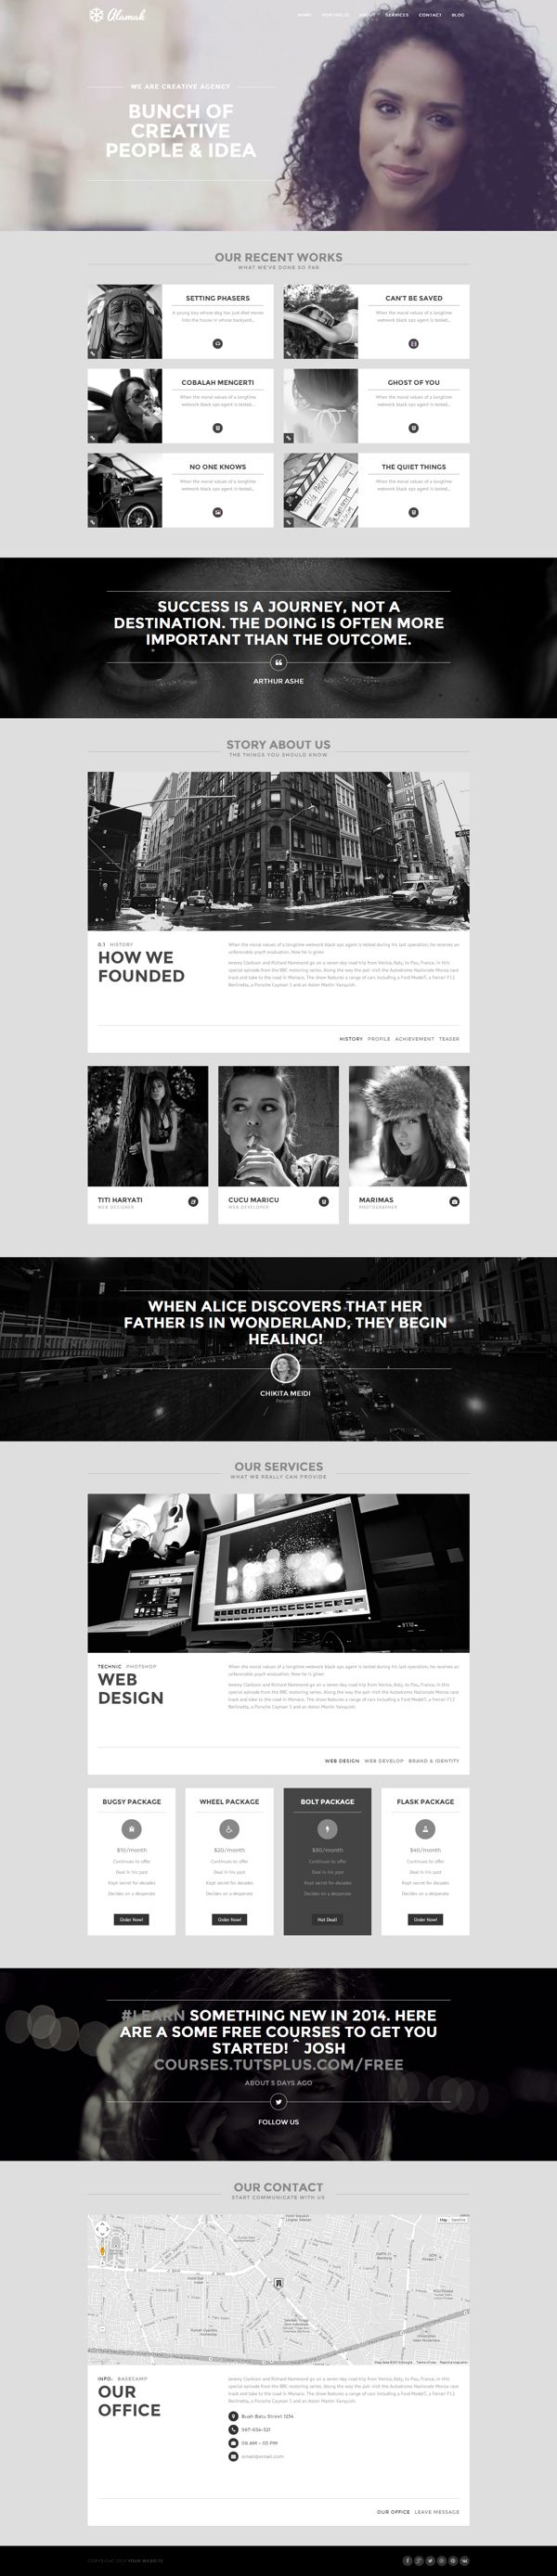 Alamak - Responsive One Page Portfolio Theme by Zizaza - design ocean , via Behance